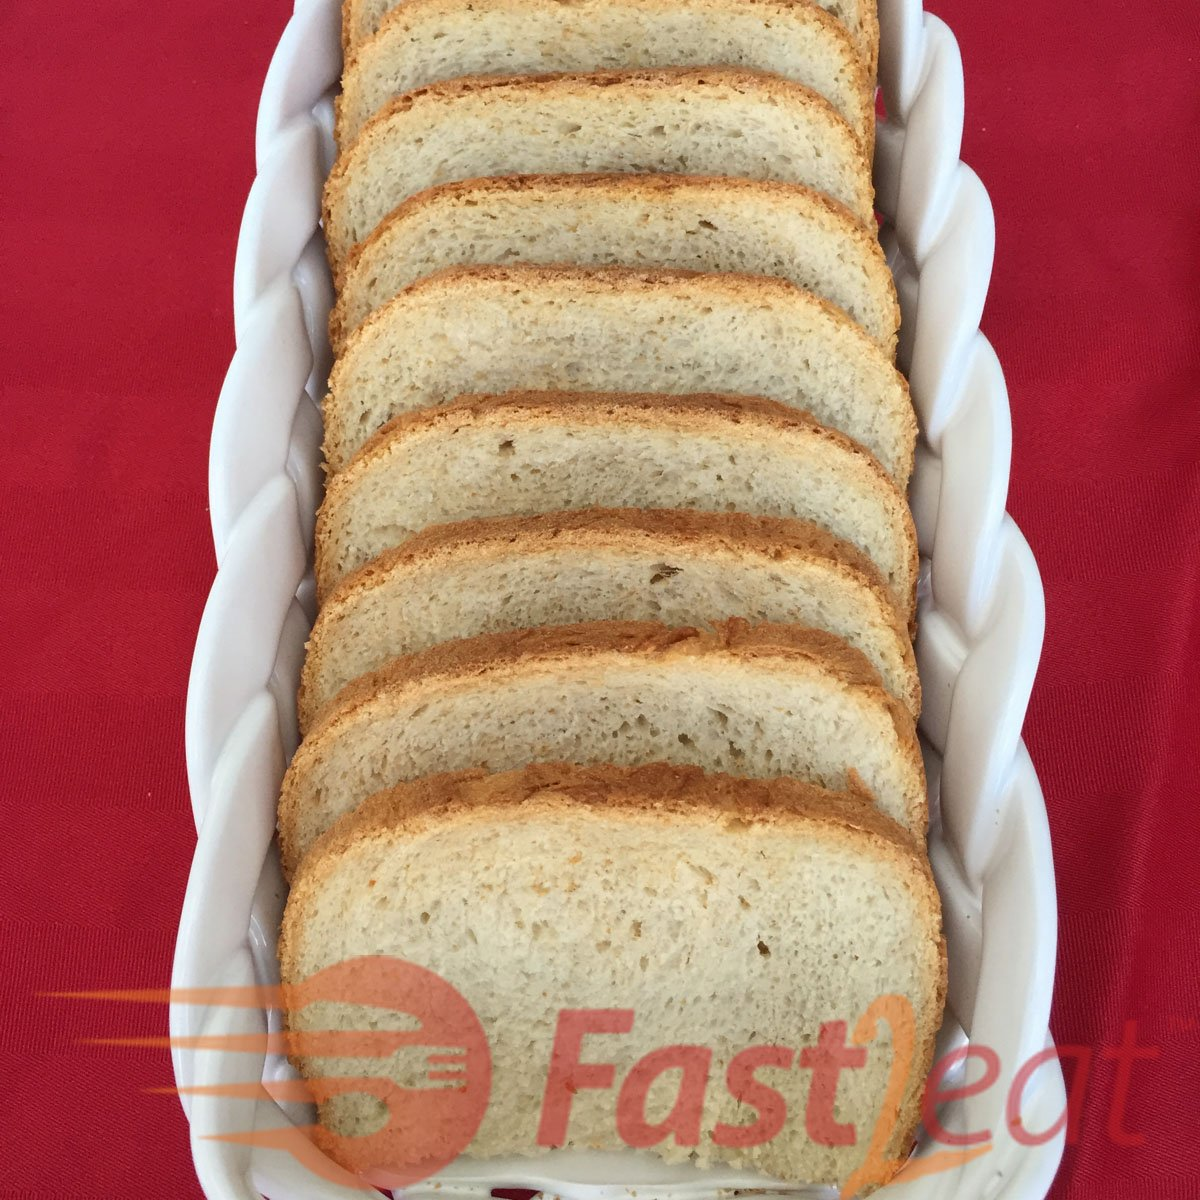 Bread machine Functions | Fast2eat